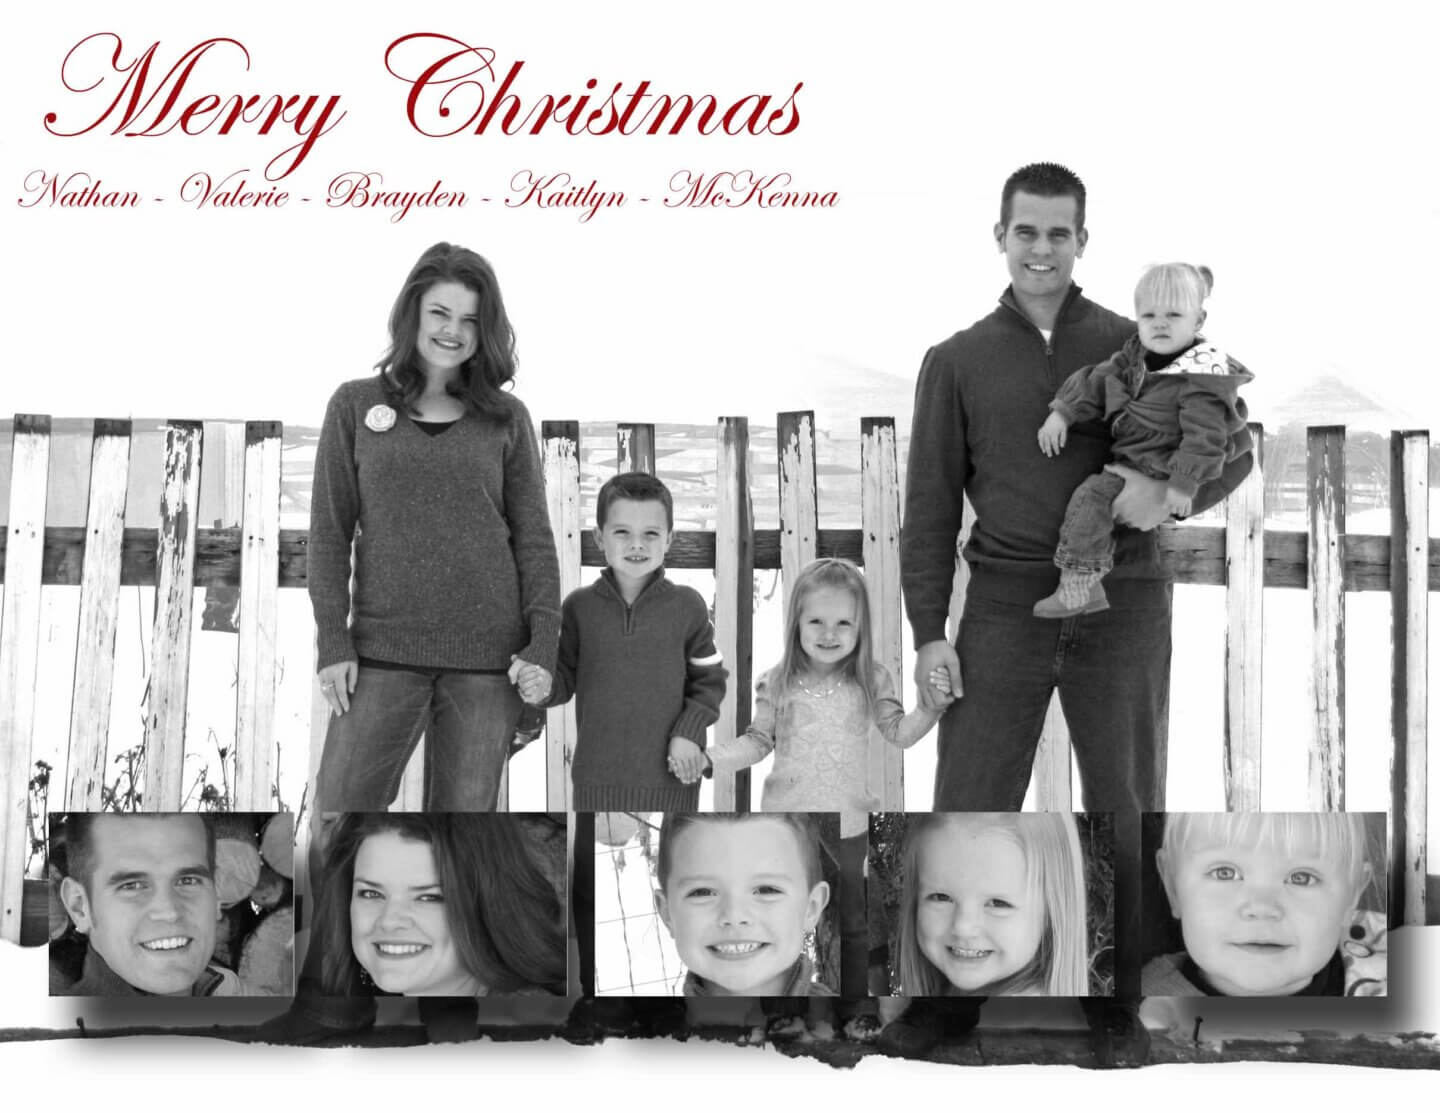 2010 Plowman Family Christmas Card